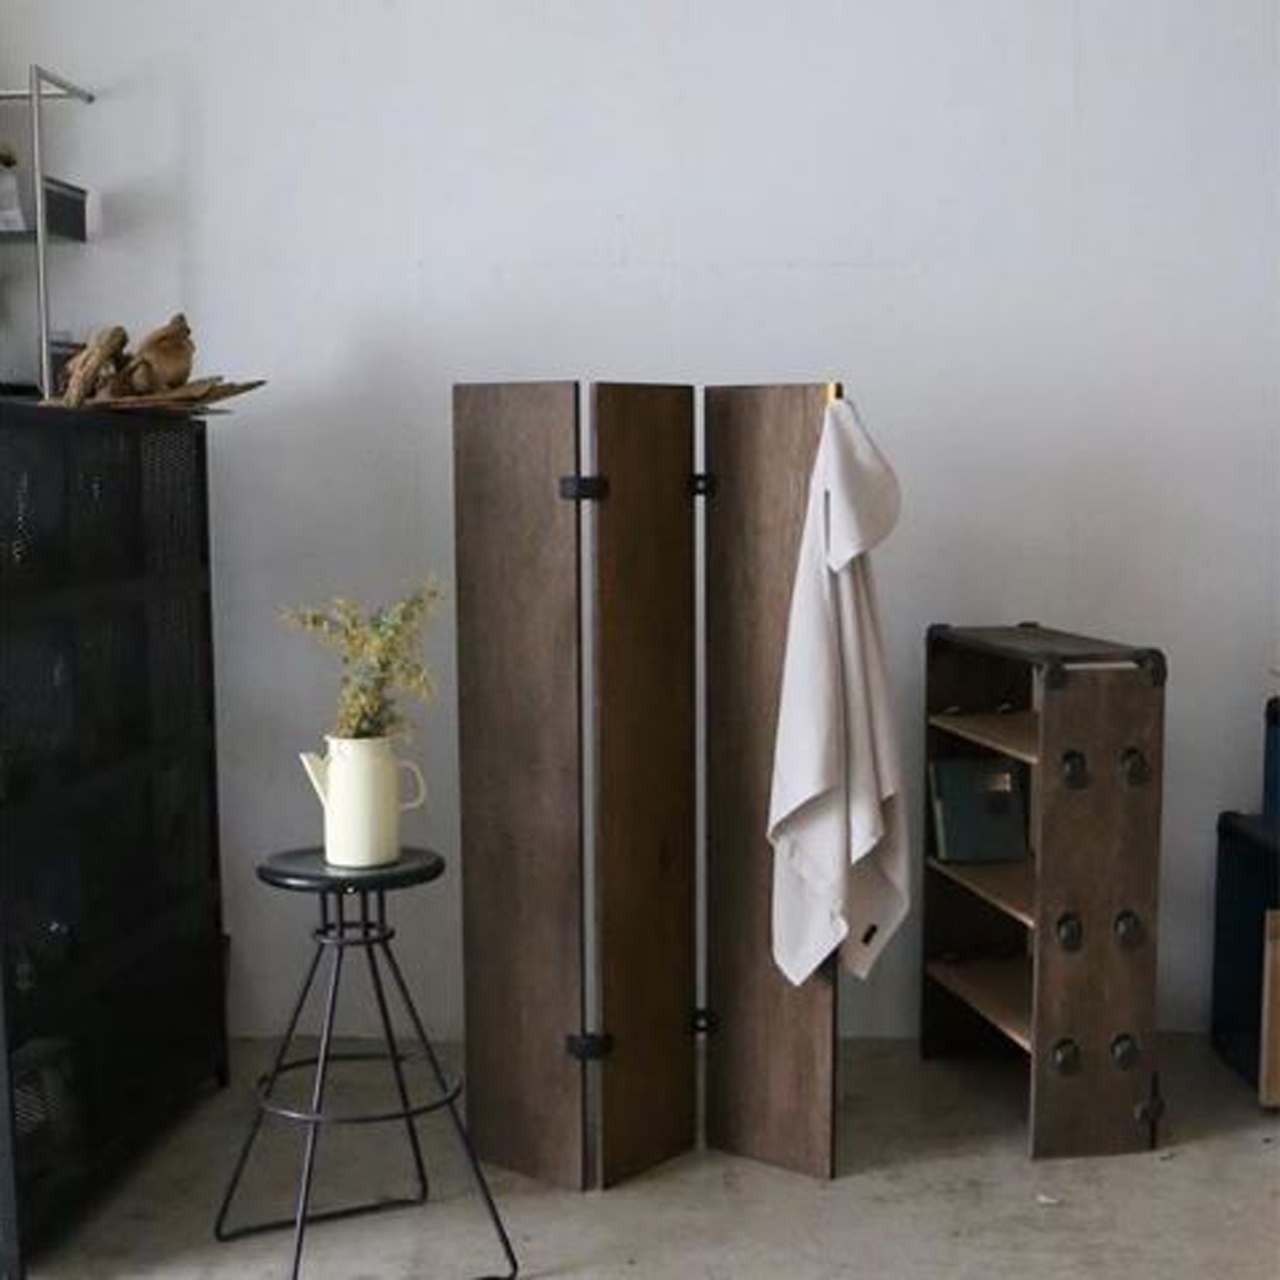 Space divider for organizing your room